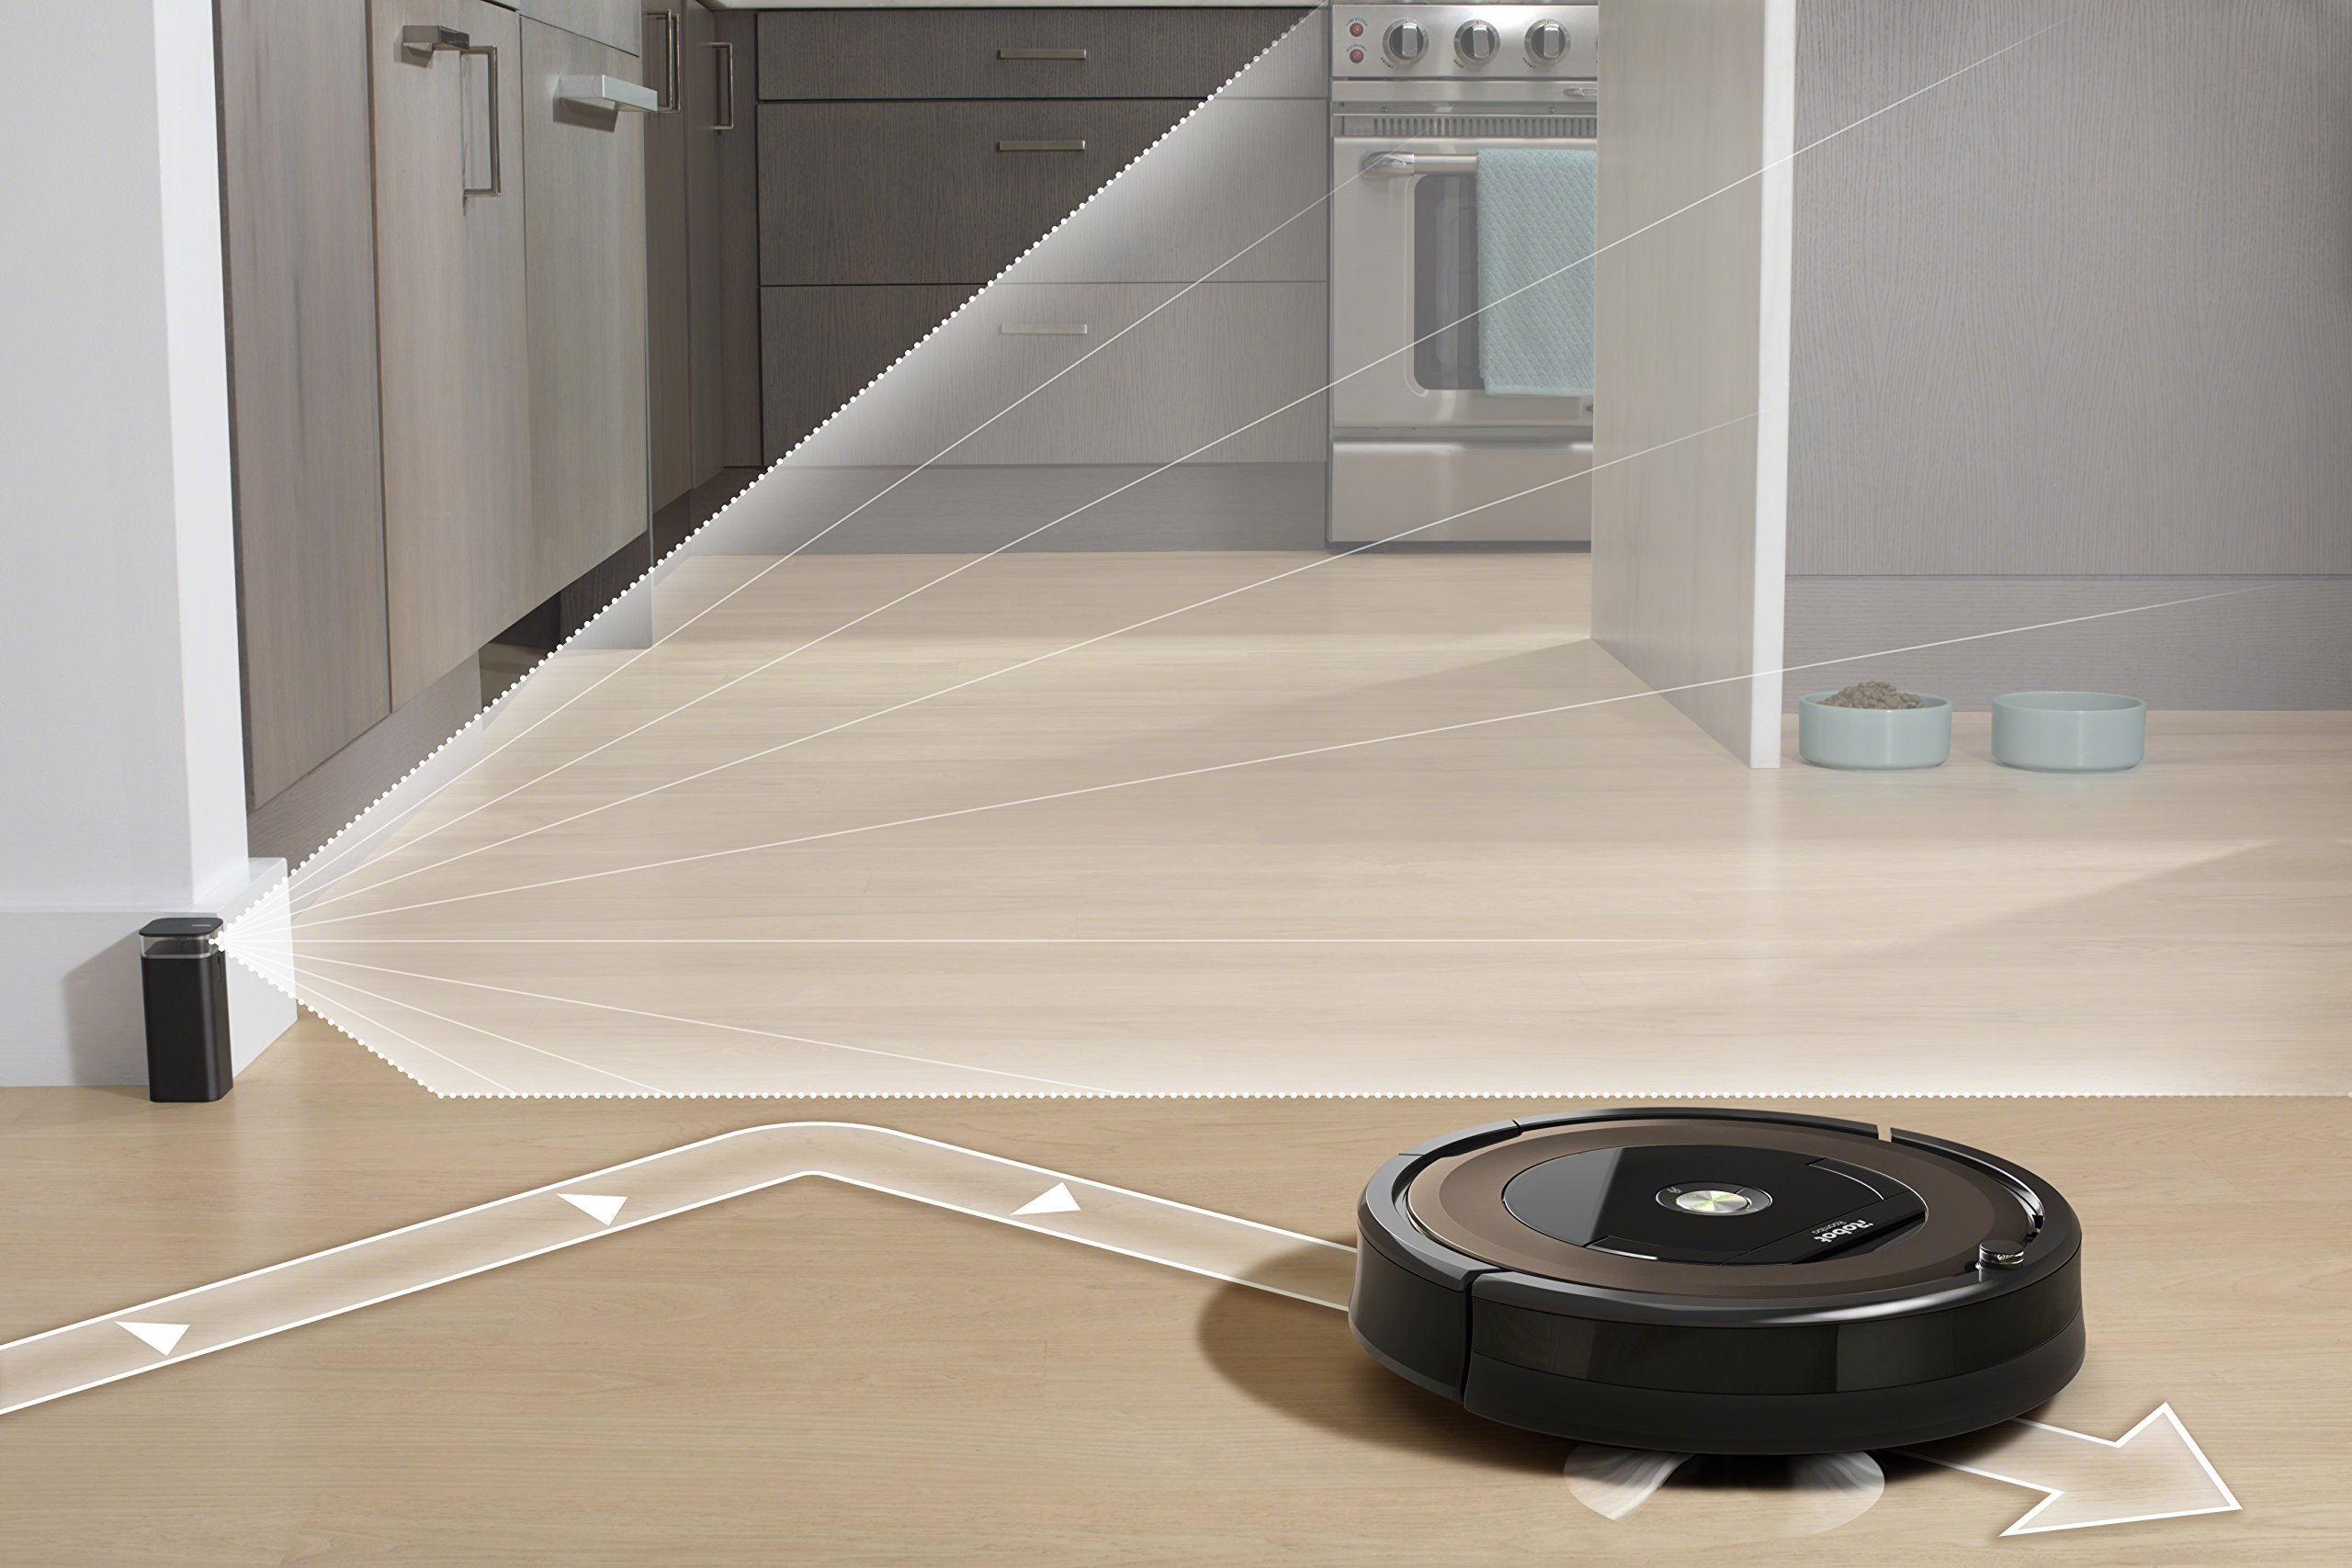 iRobot Roomba 890 Robot Vacuum with Wi-Fi Connectivity by iRobot (Image #6)